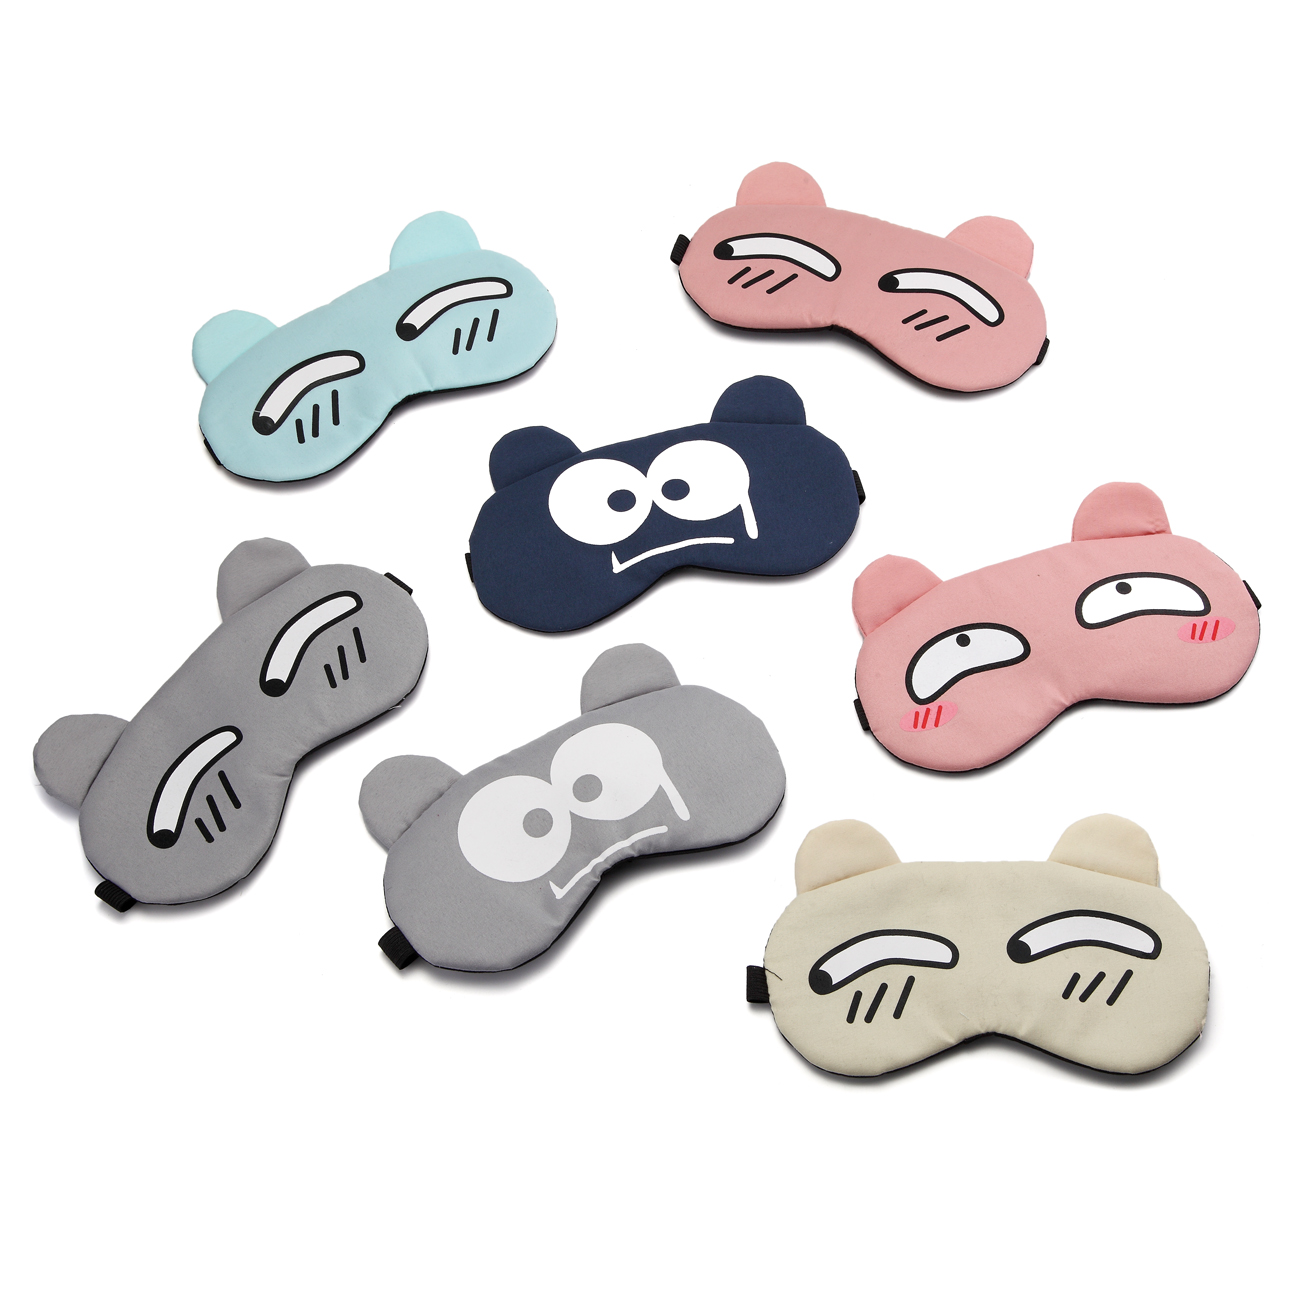 Cartoon Sleeping Eye Mask Cotton Eye Cover Sleeping Mask Eyepatch Cute Sleep Mask Travel Rest Eye Band Kids Eye Shade Blindfold